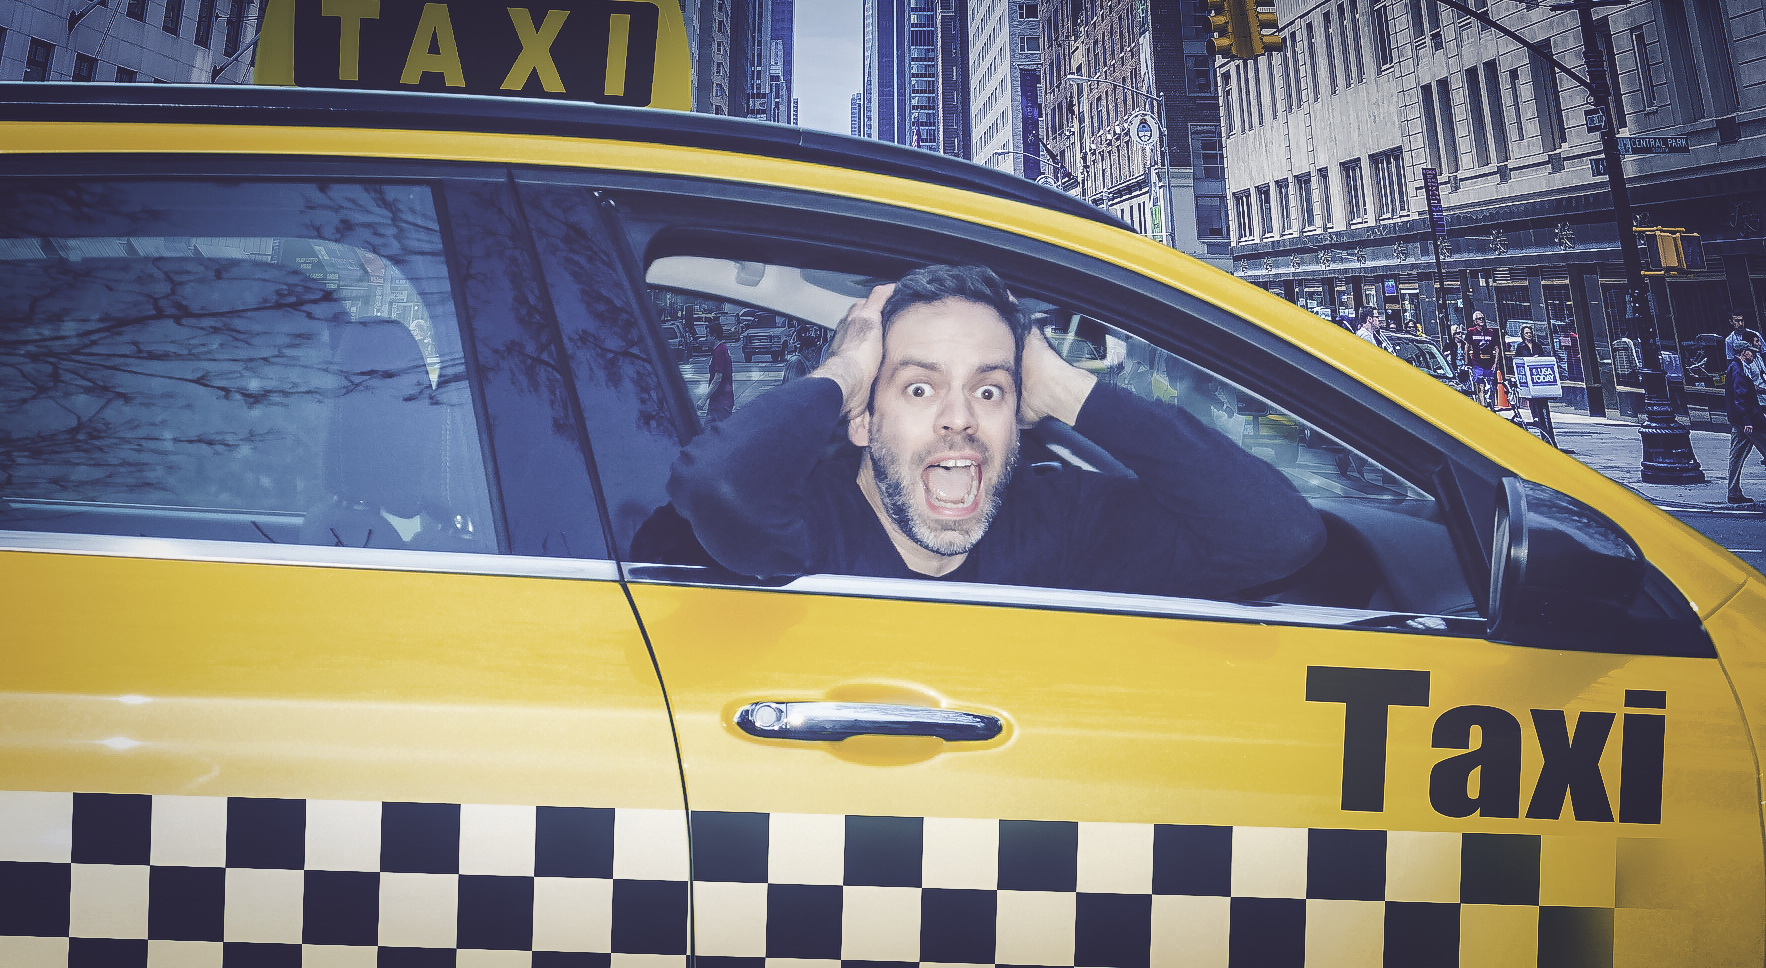 Behind the wheel of the Dad Taxi